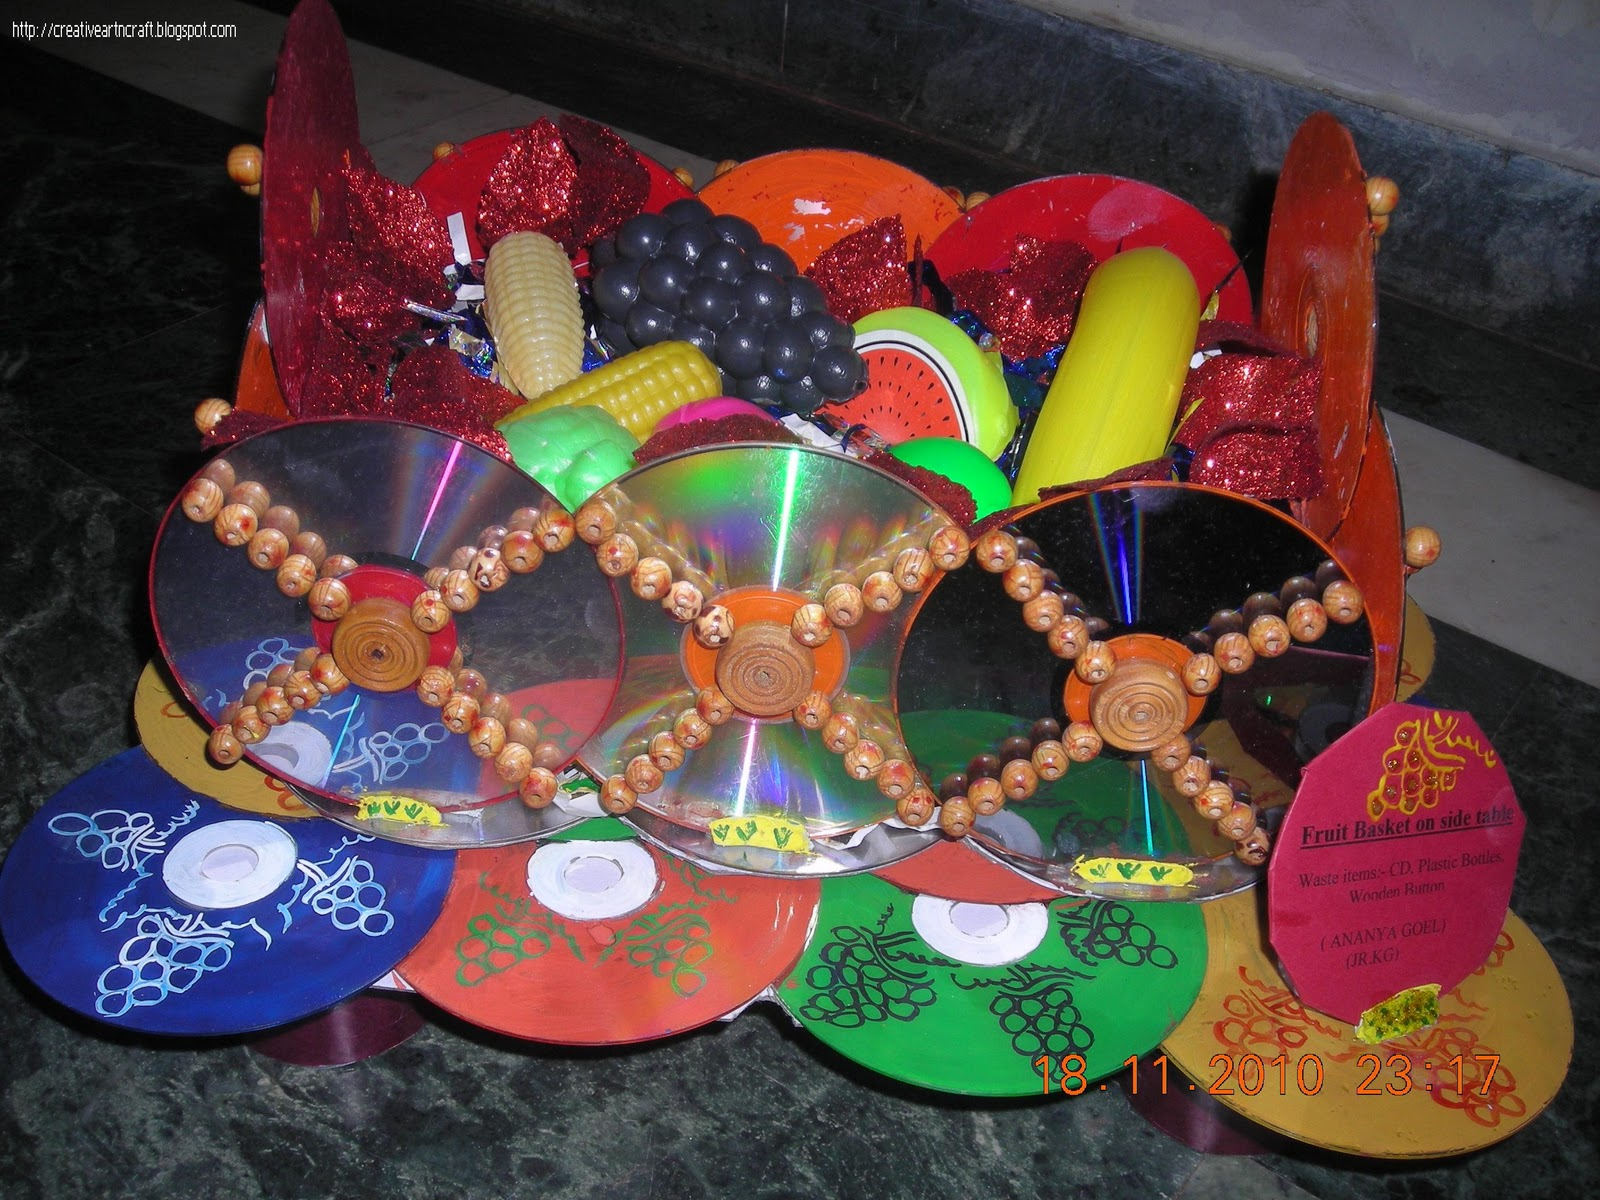 Anu 39 s art and crafts best out of waste fruit basket with for Homemade items from waste materials